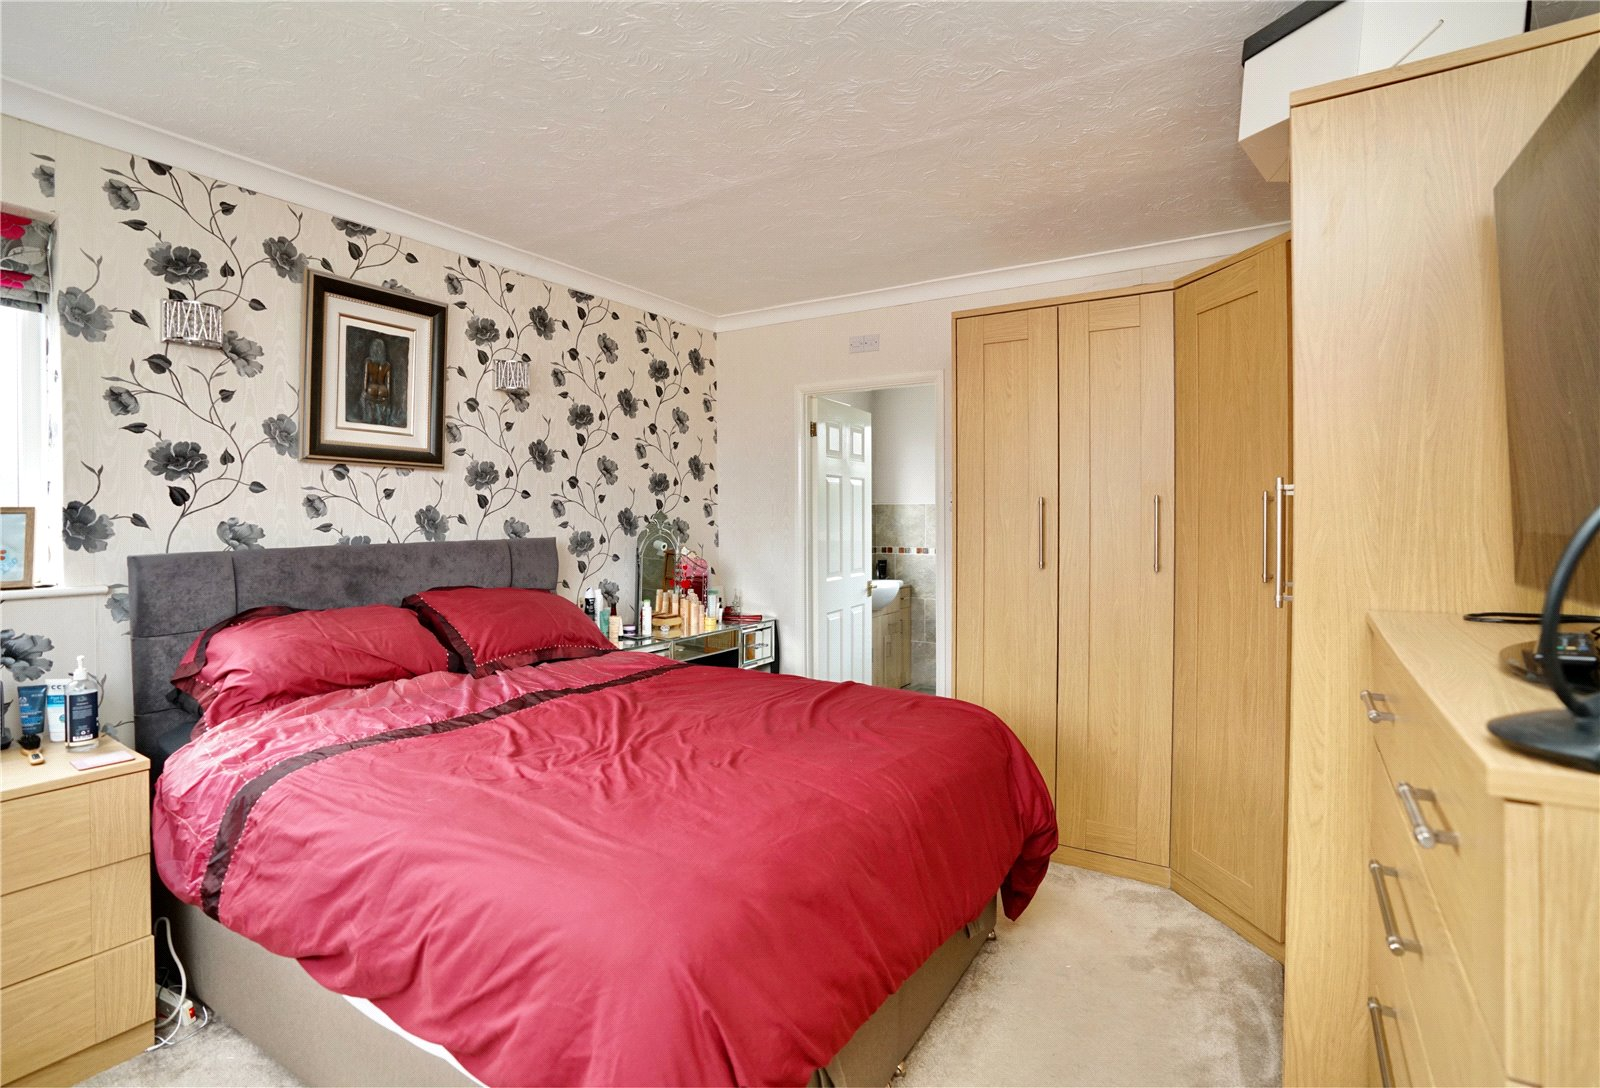 3 bed house for sale in Barley Road, Eaton Socon  - Property Image 11